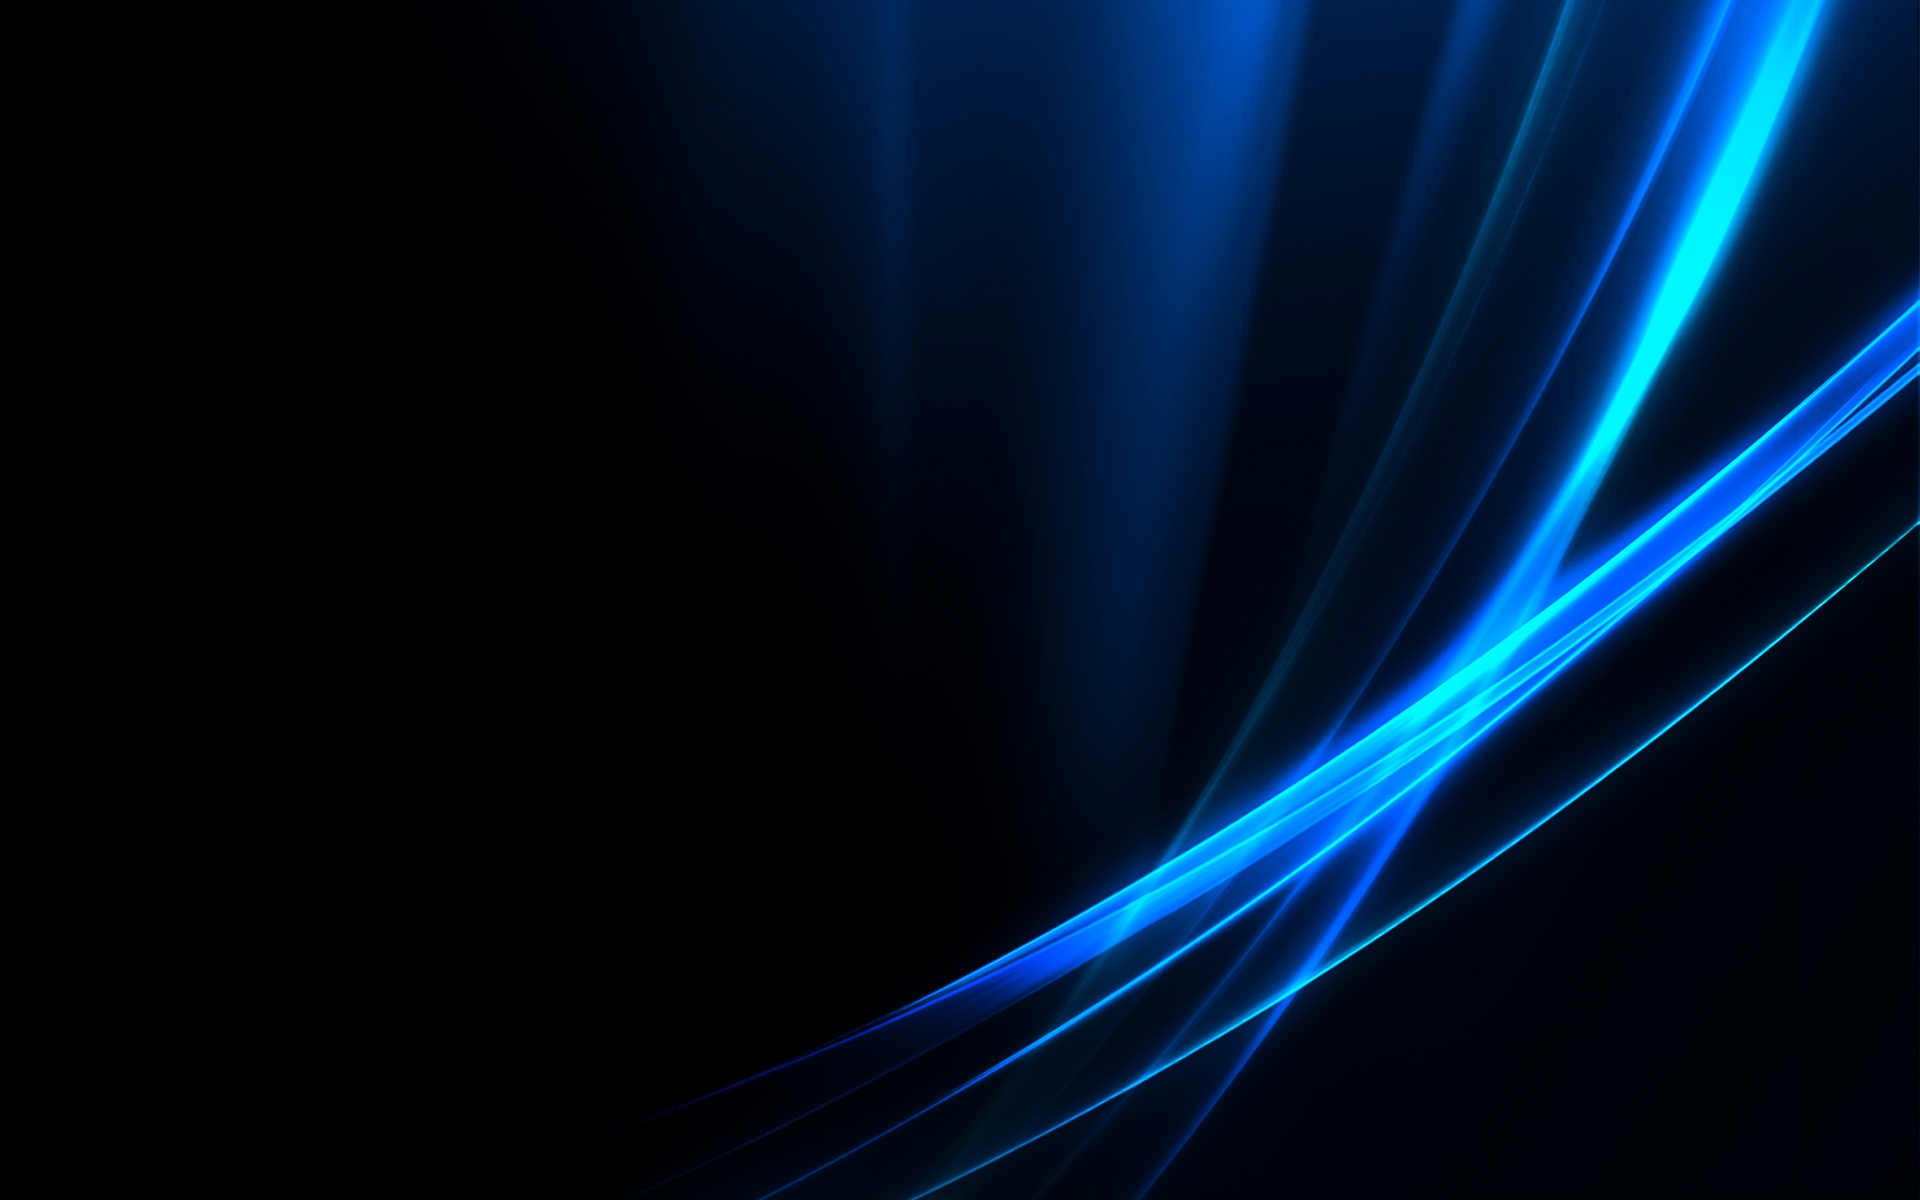 3d Blue Abstract Qhd Full Hd Wallpaper: Dark Blue Background Images